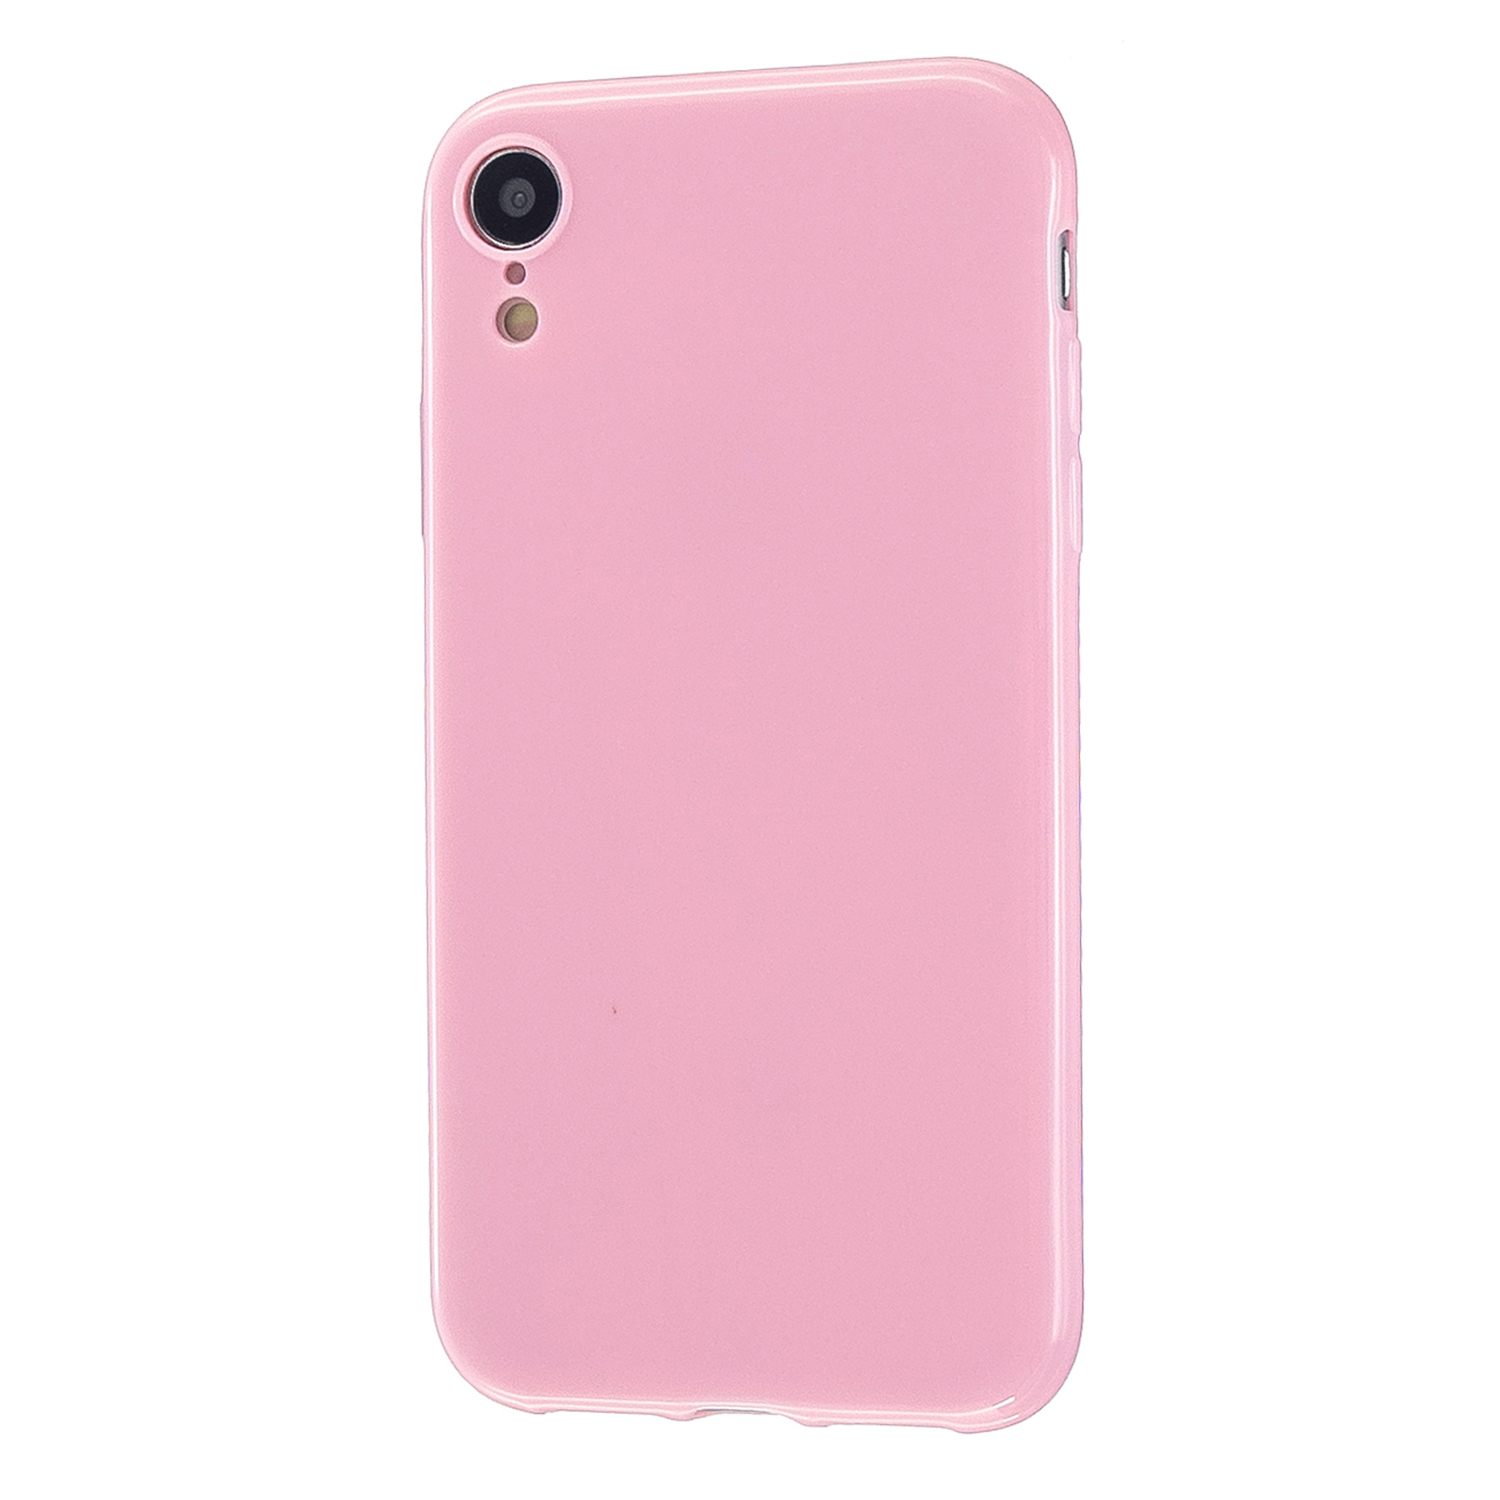 For iPhone X/XS/XS Max/XR  Cellphone Cover Slim Fit Bumper Protective Case Glossy TPU Mobile Phone Shell Rose pink